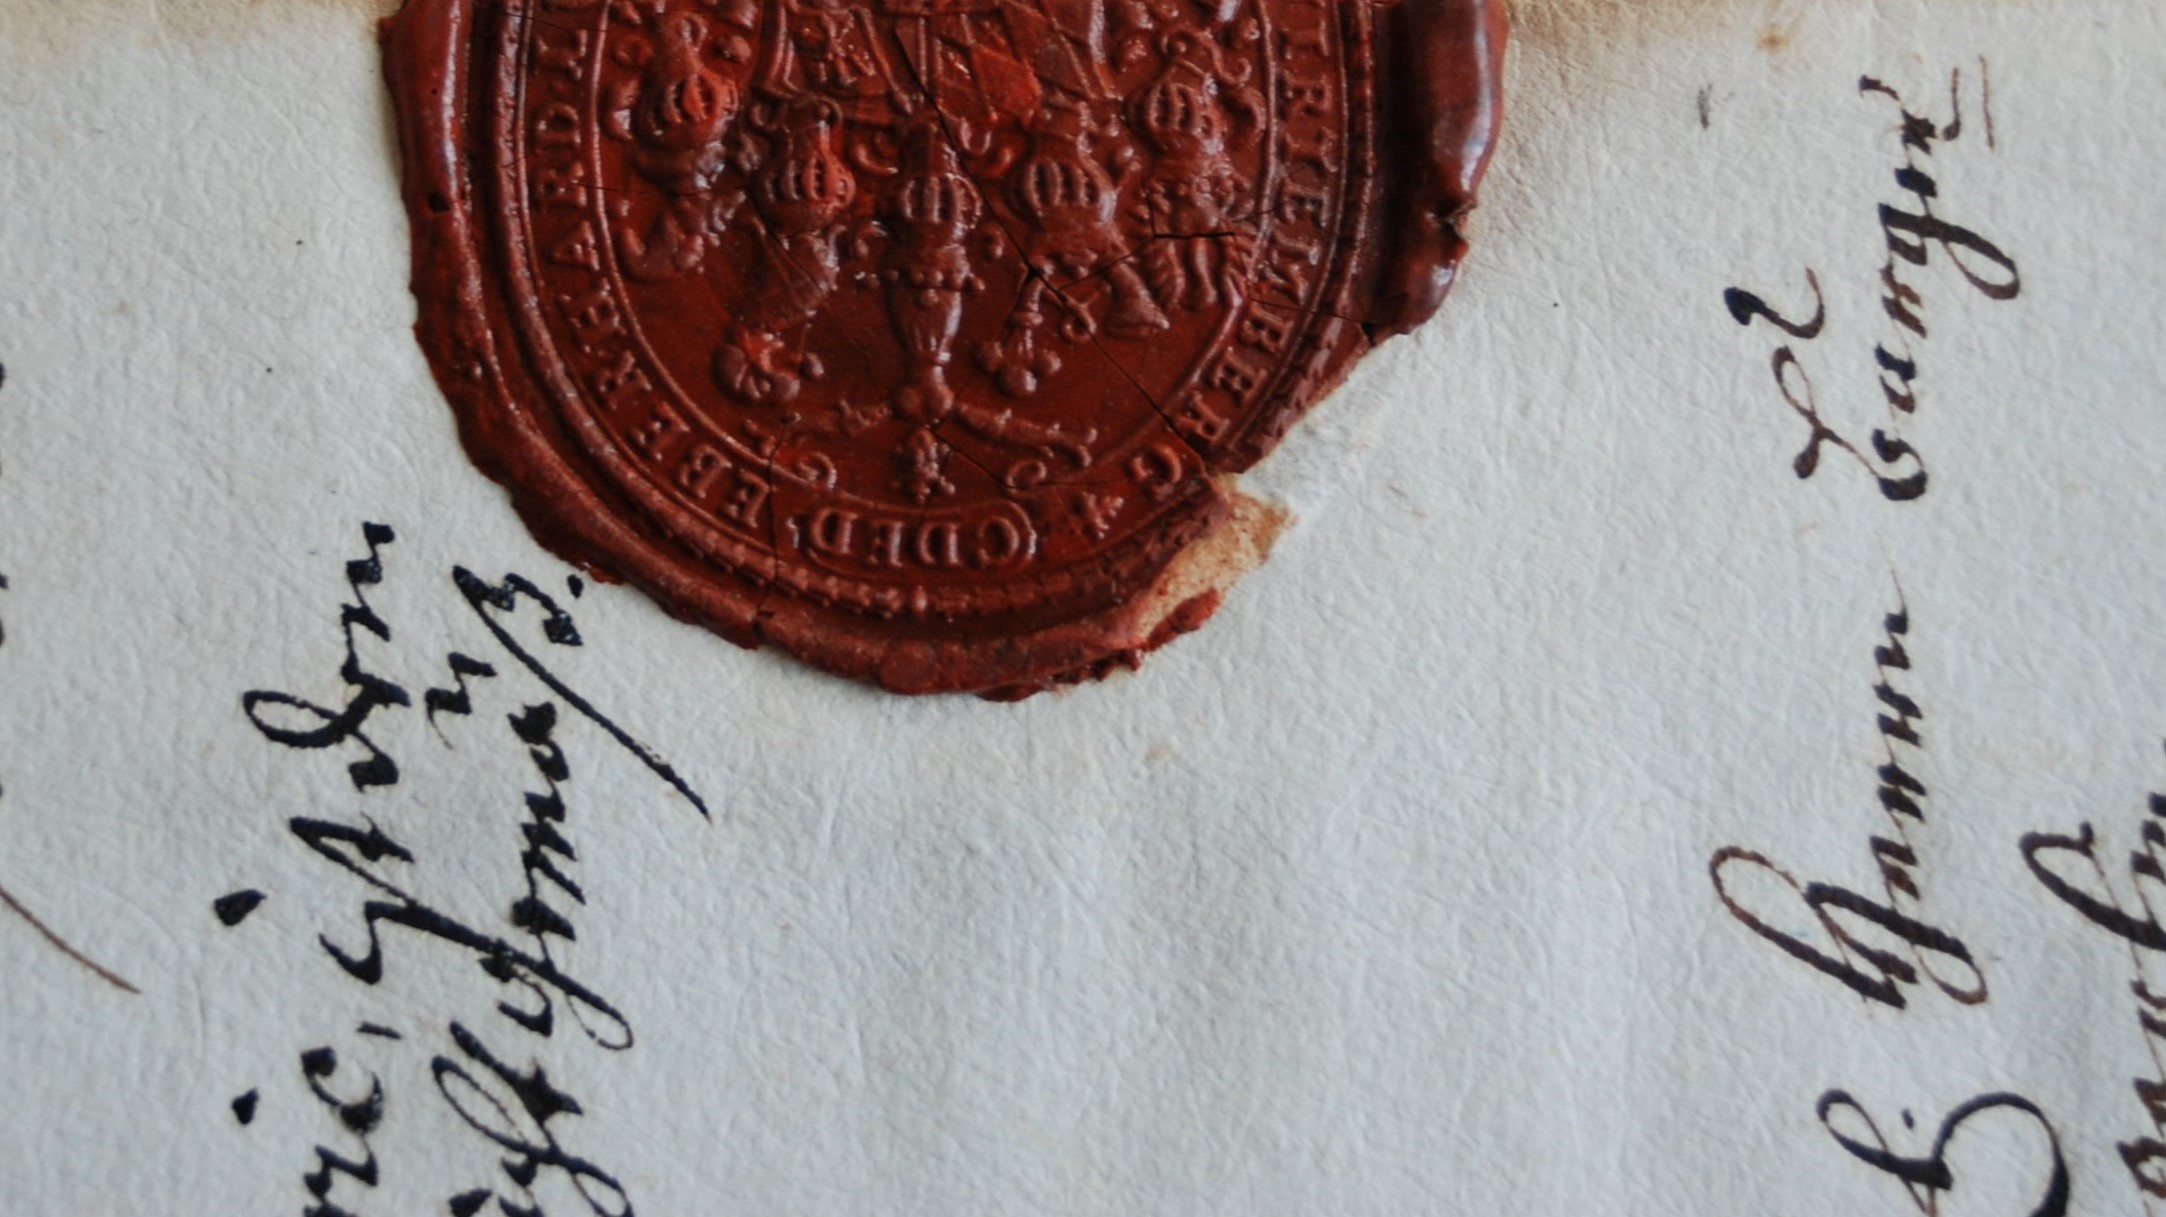 Old document with red wax seal